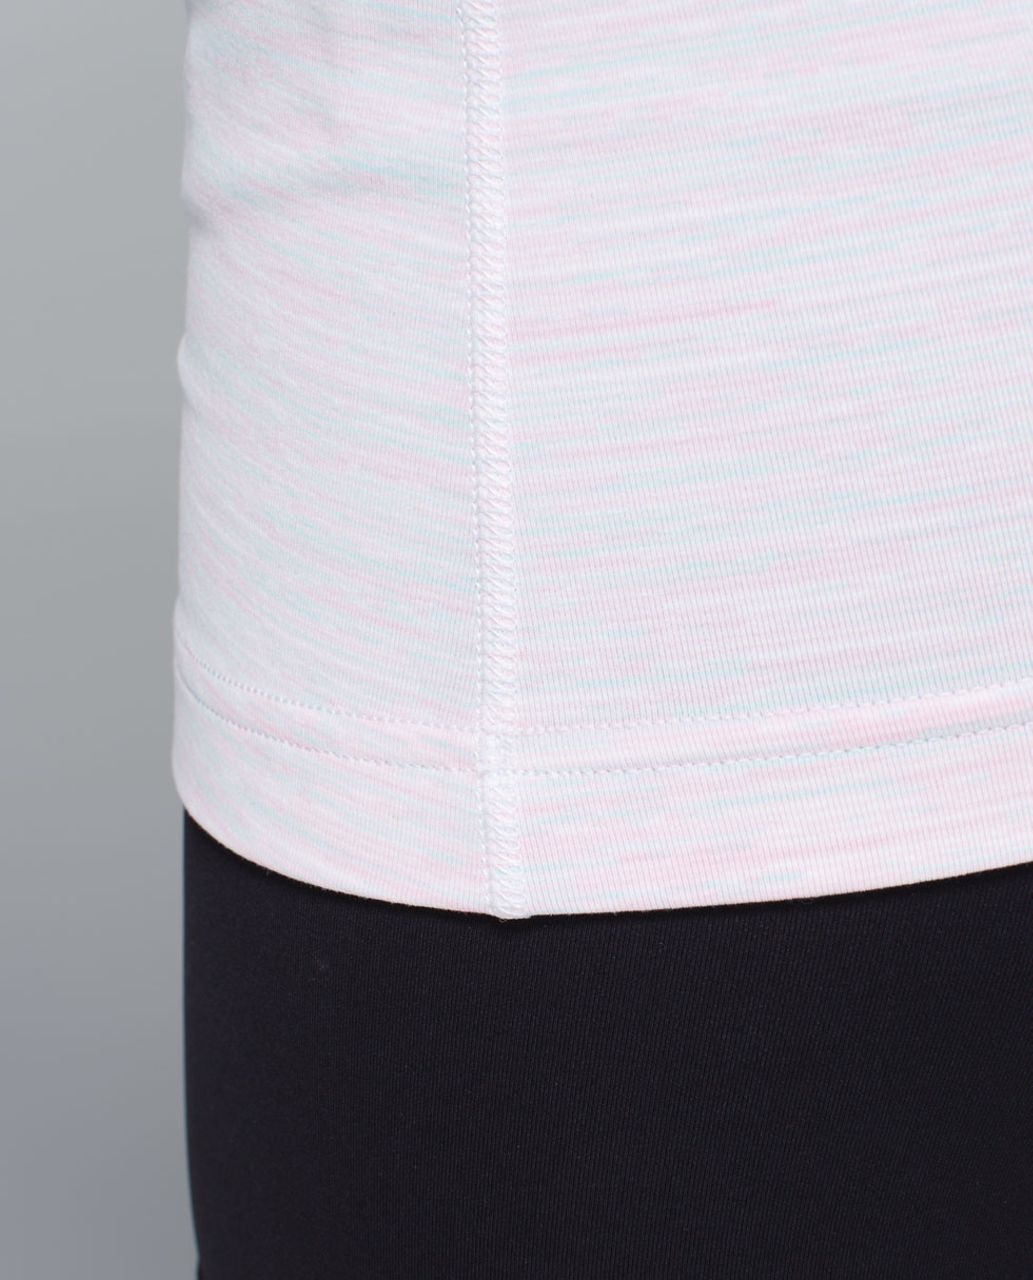 Lululemon Cool Racerback - Wee Are From Space White Barely Pink